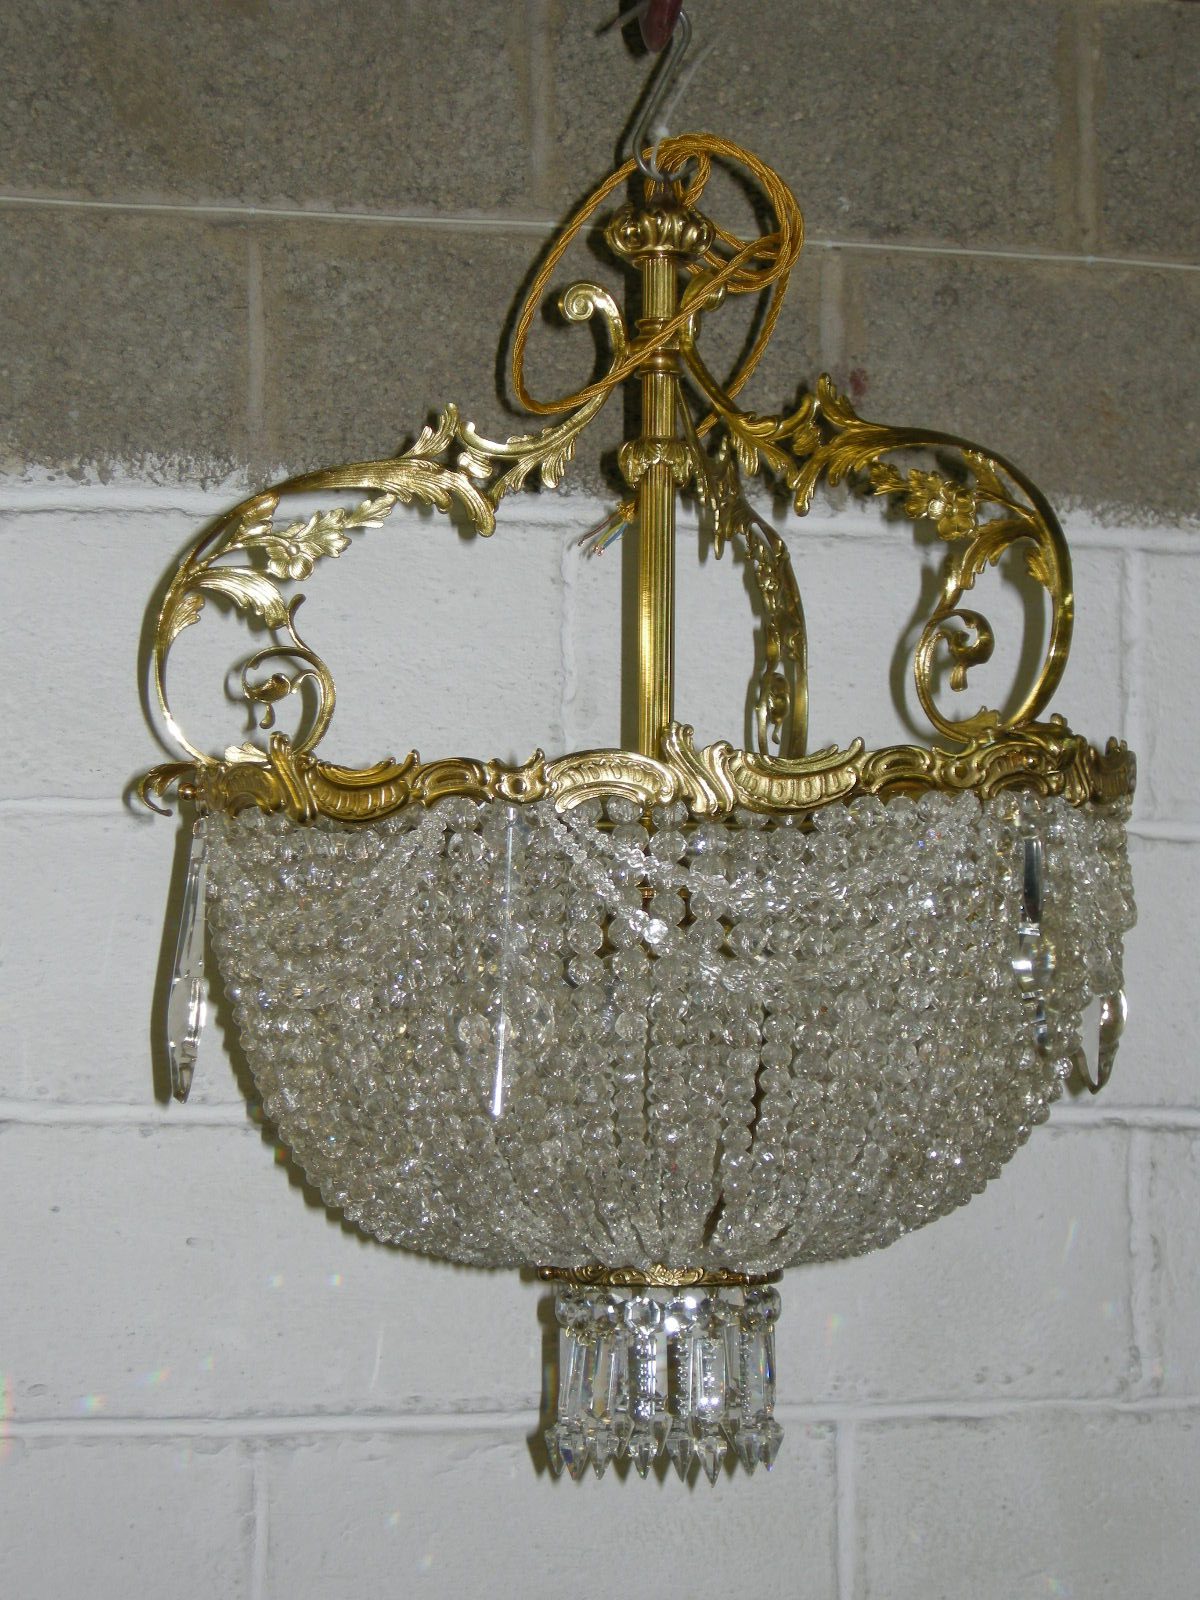 brass and glass chandelier after restoration